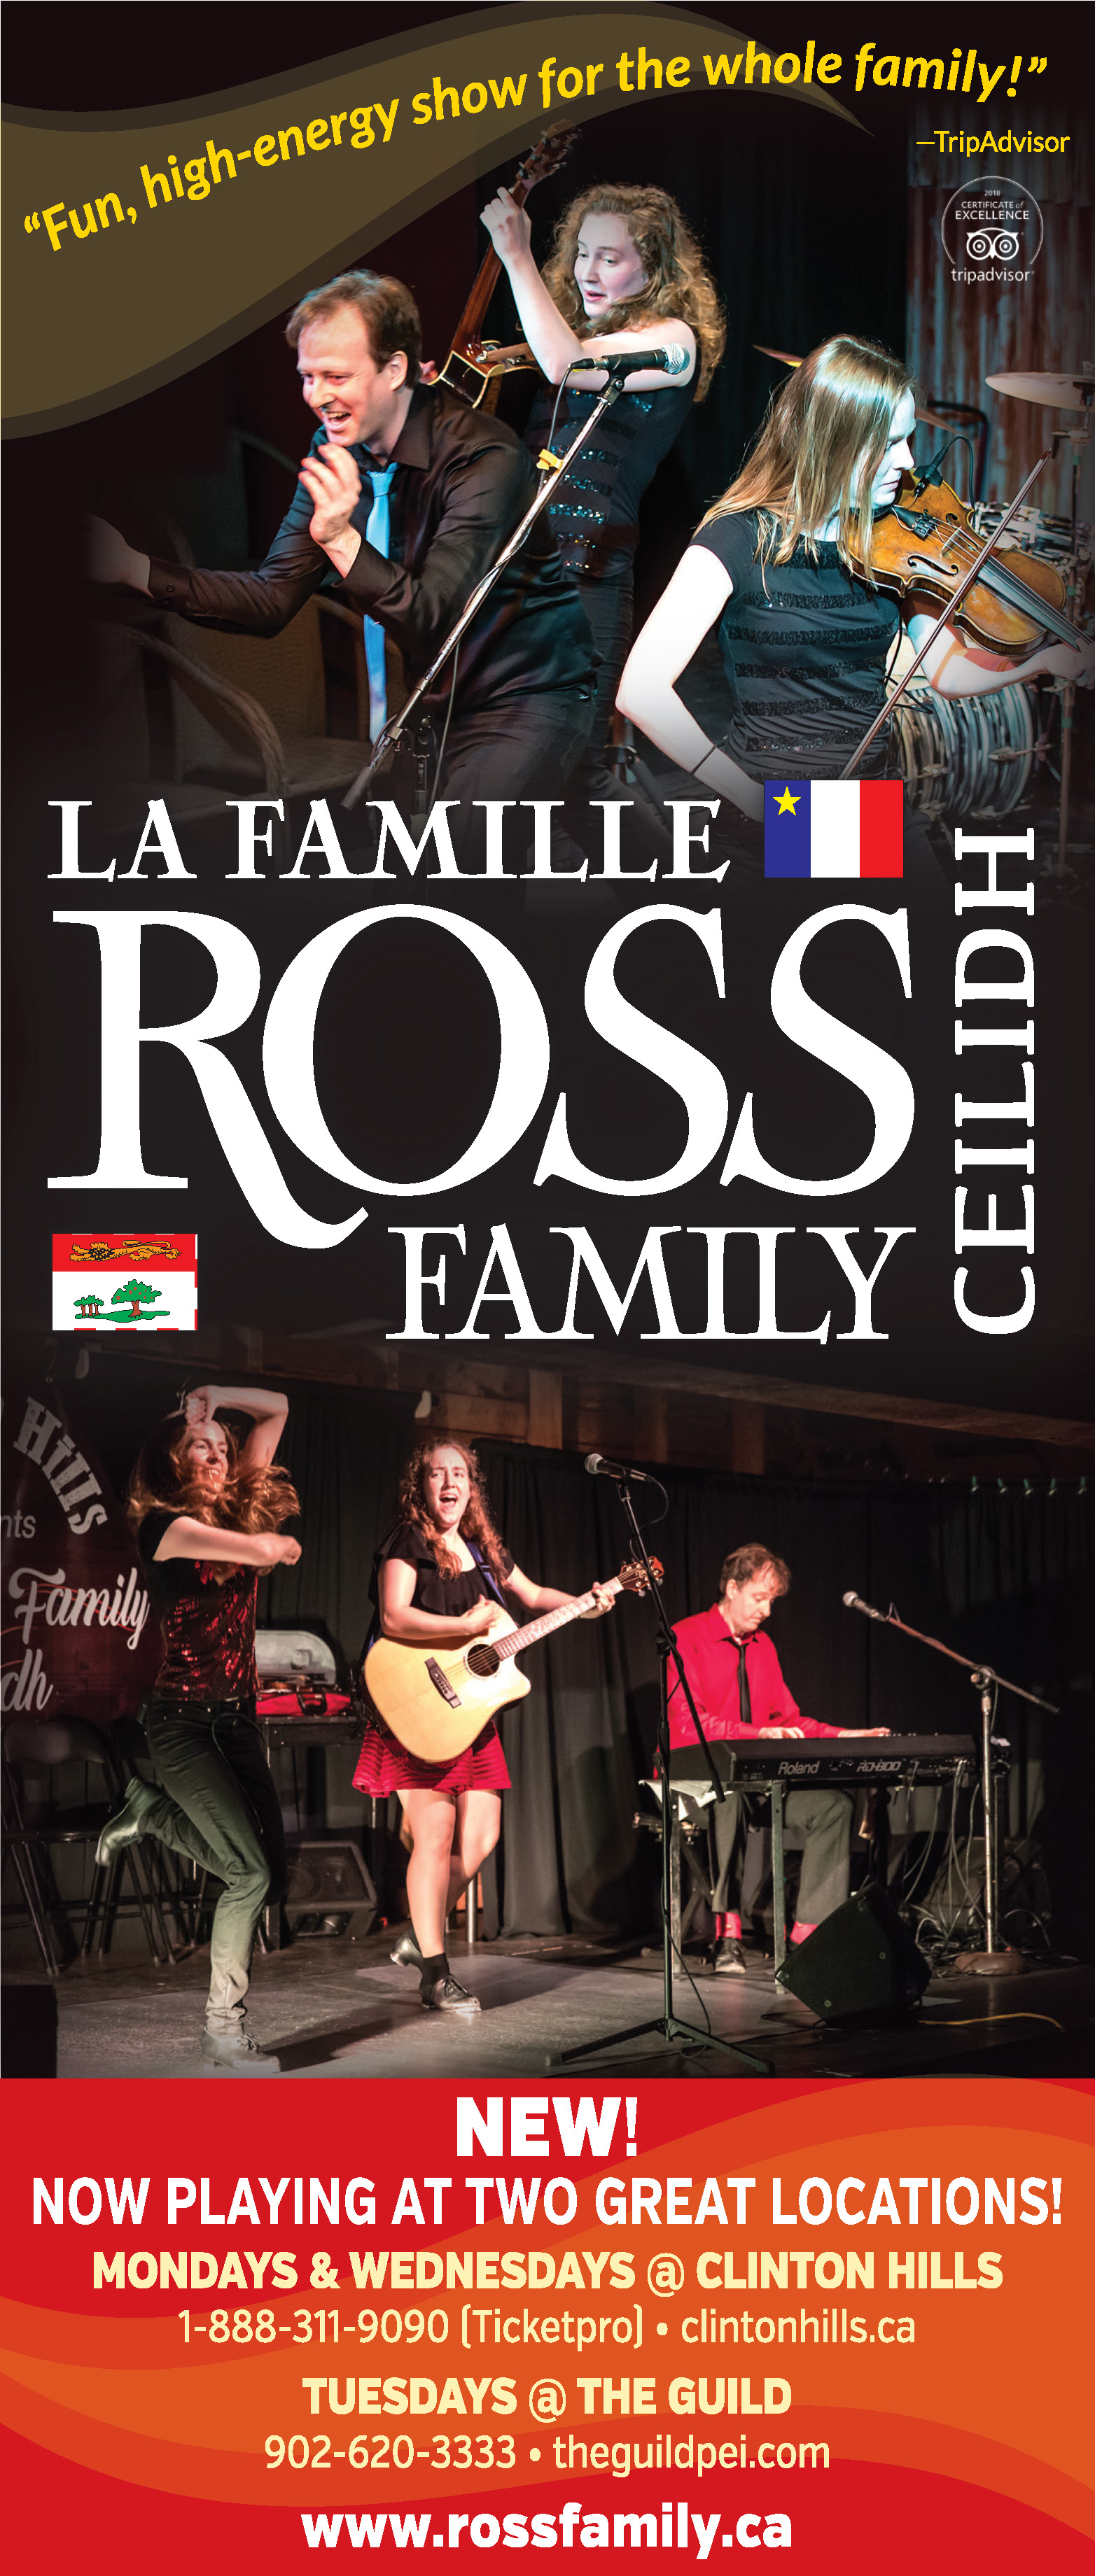 Ross Family Rack Front MAY19